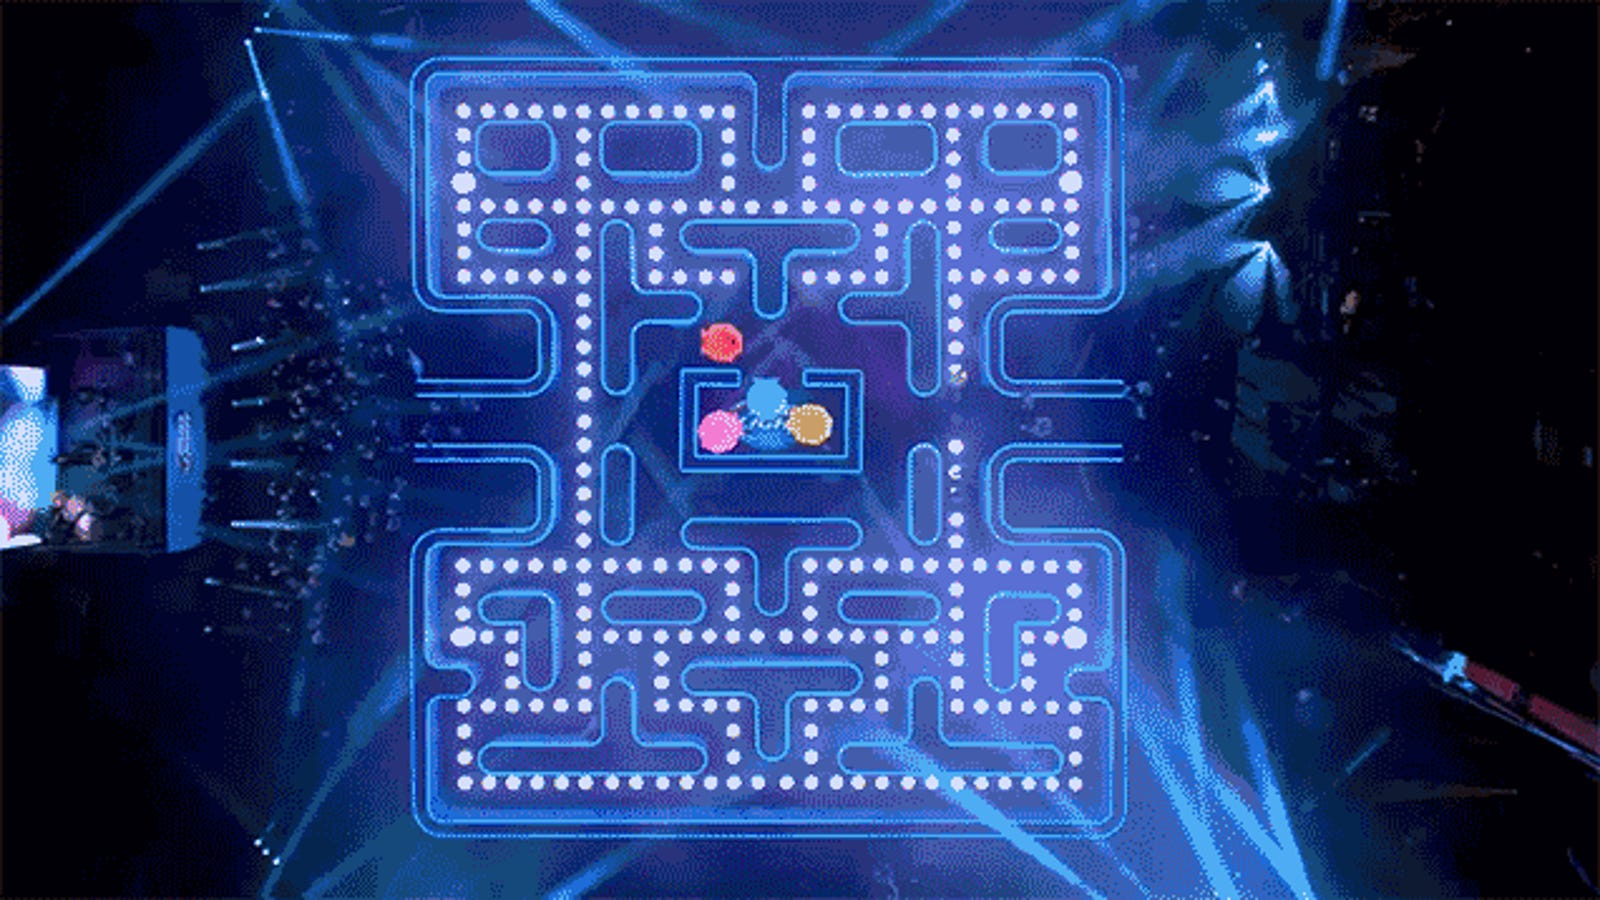 Bud Light Built a Human-Sized Pac-Man Maze For Its Super Bowl Ad